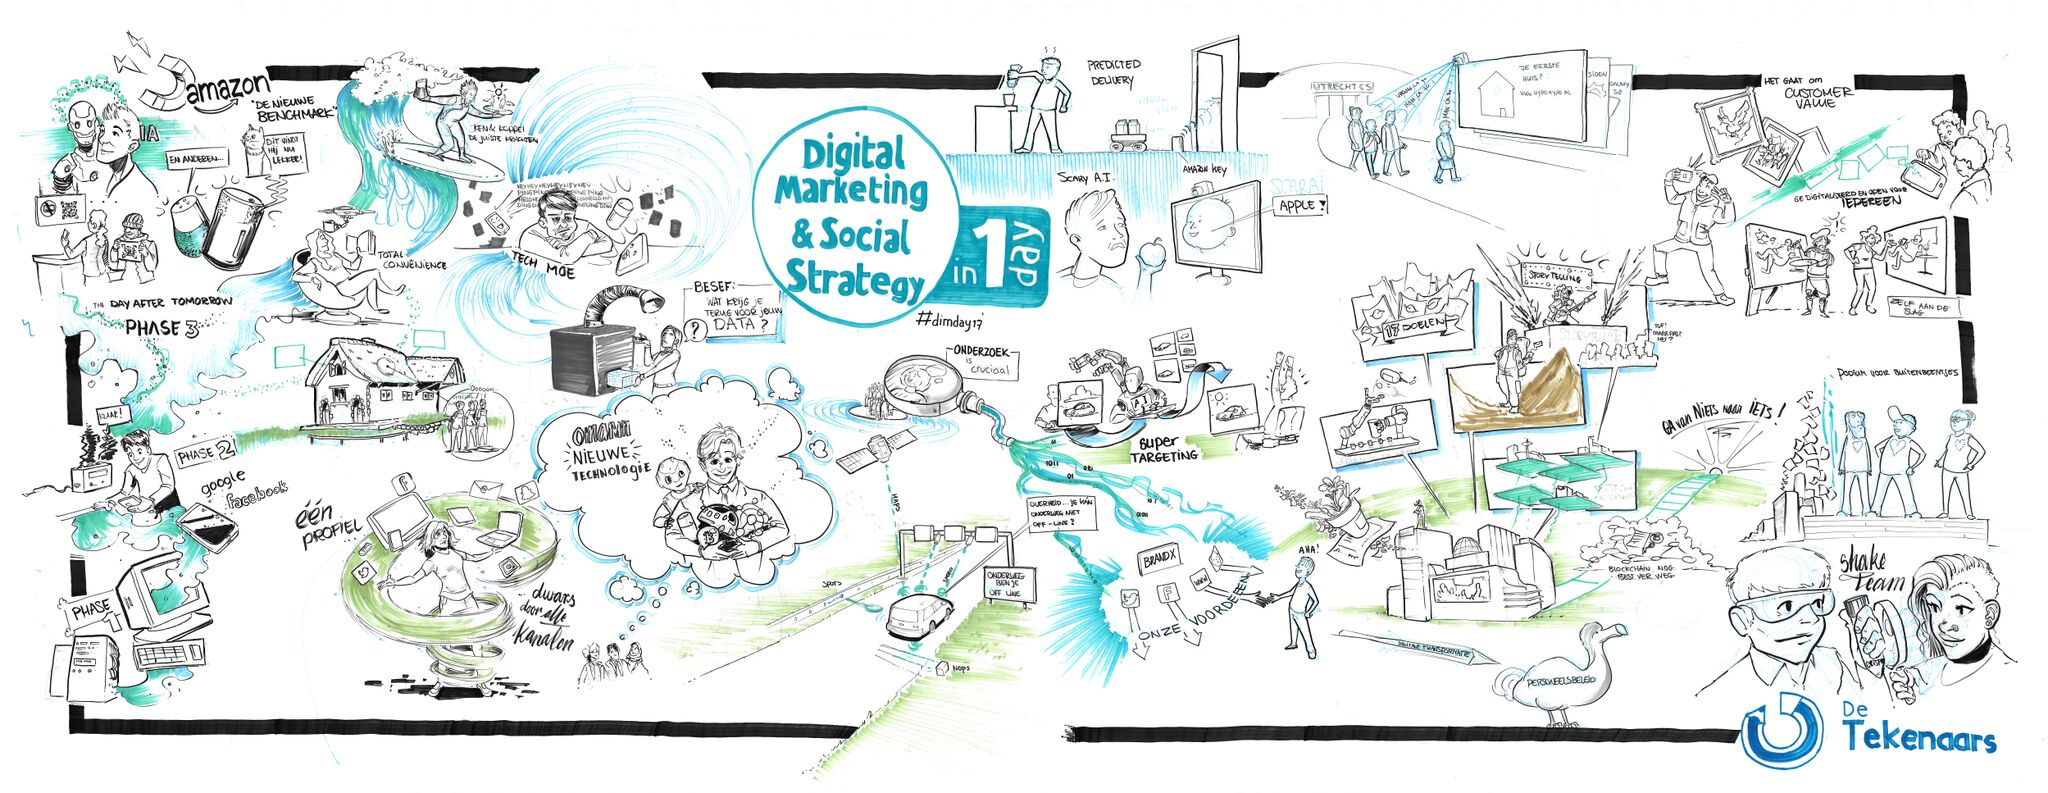 Visuele Samenvatting voor Digital Marketing in 1 Day